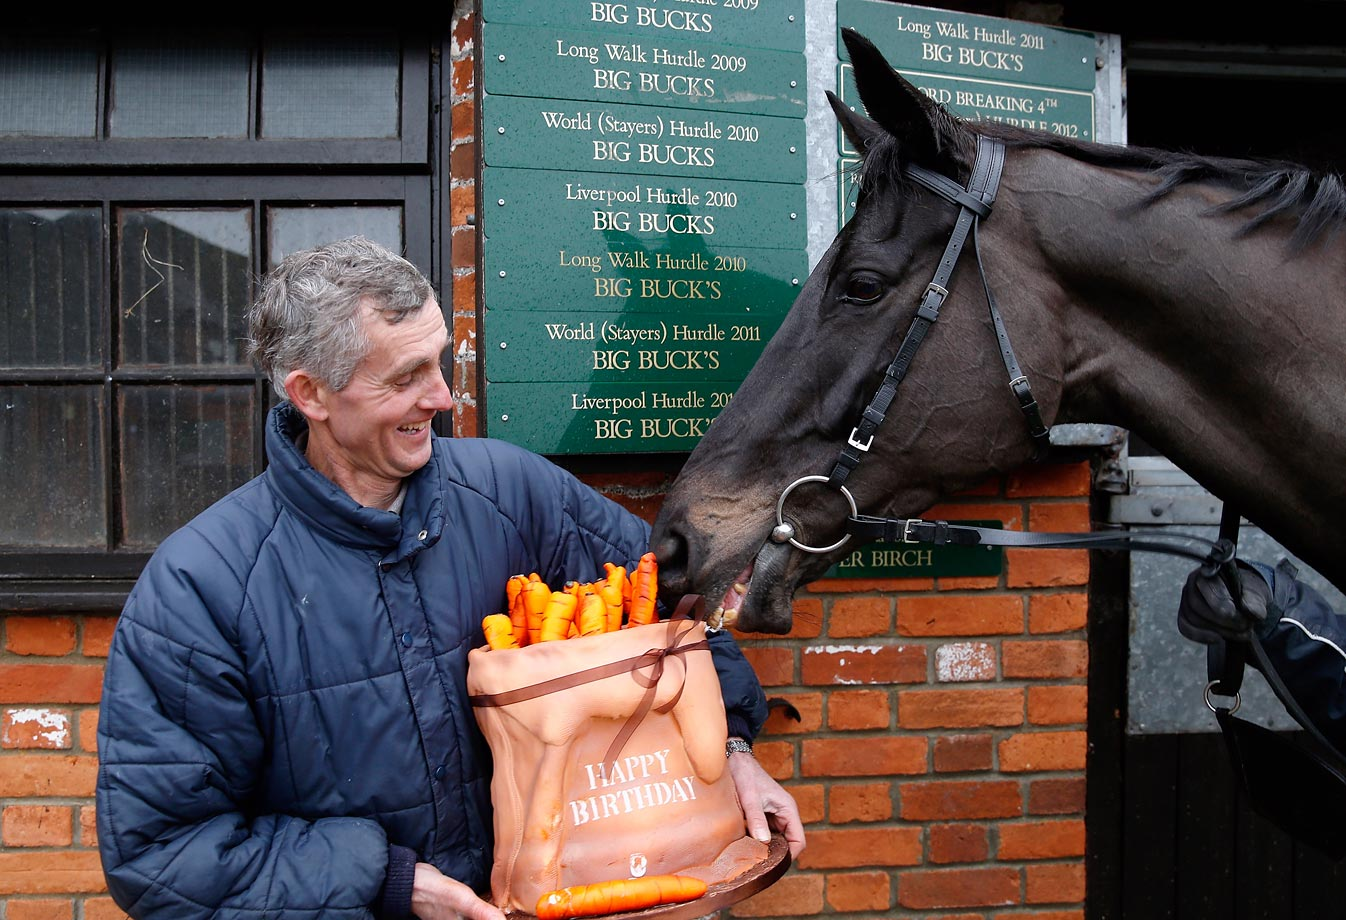 Superstar hurdler Big Buck's receives a birthday cake, which fittingly resembles a sack of carrots, from Great British Racing to celebrate his 11th birthday on Dec. 18, 2013.